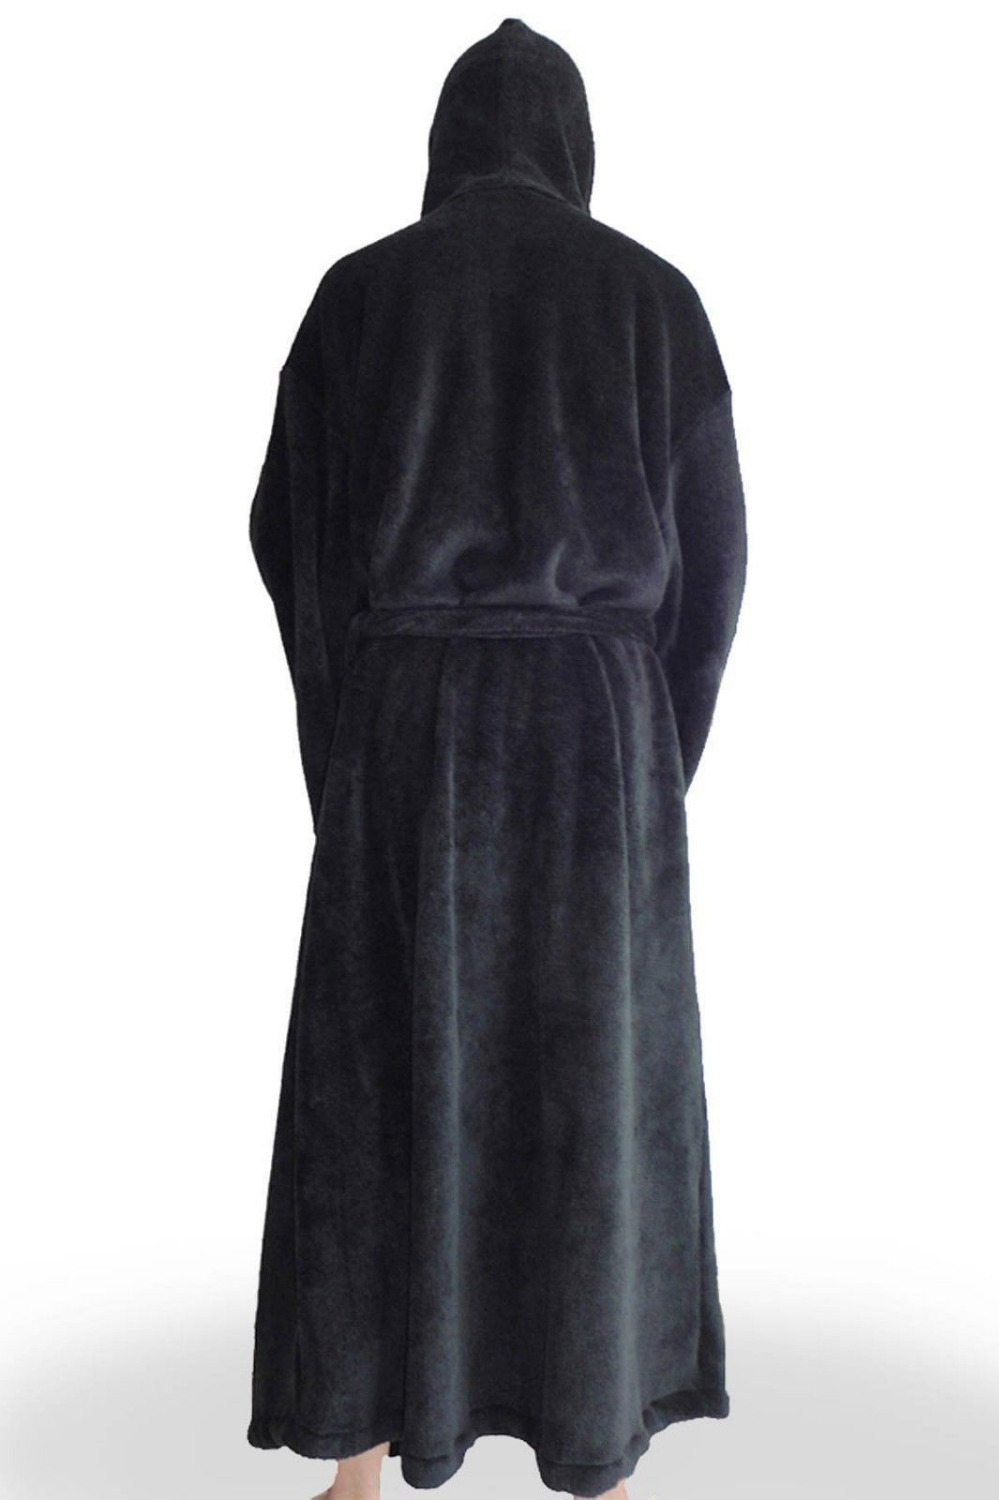 b0cd516720 Star-Wars-Adult-Brown-Jedi-Black-Sith-Robe-Bathrobe-Cape-Cloak-Sexy-Costume -For-Hallowen-Christmas.jpg